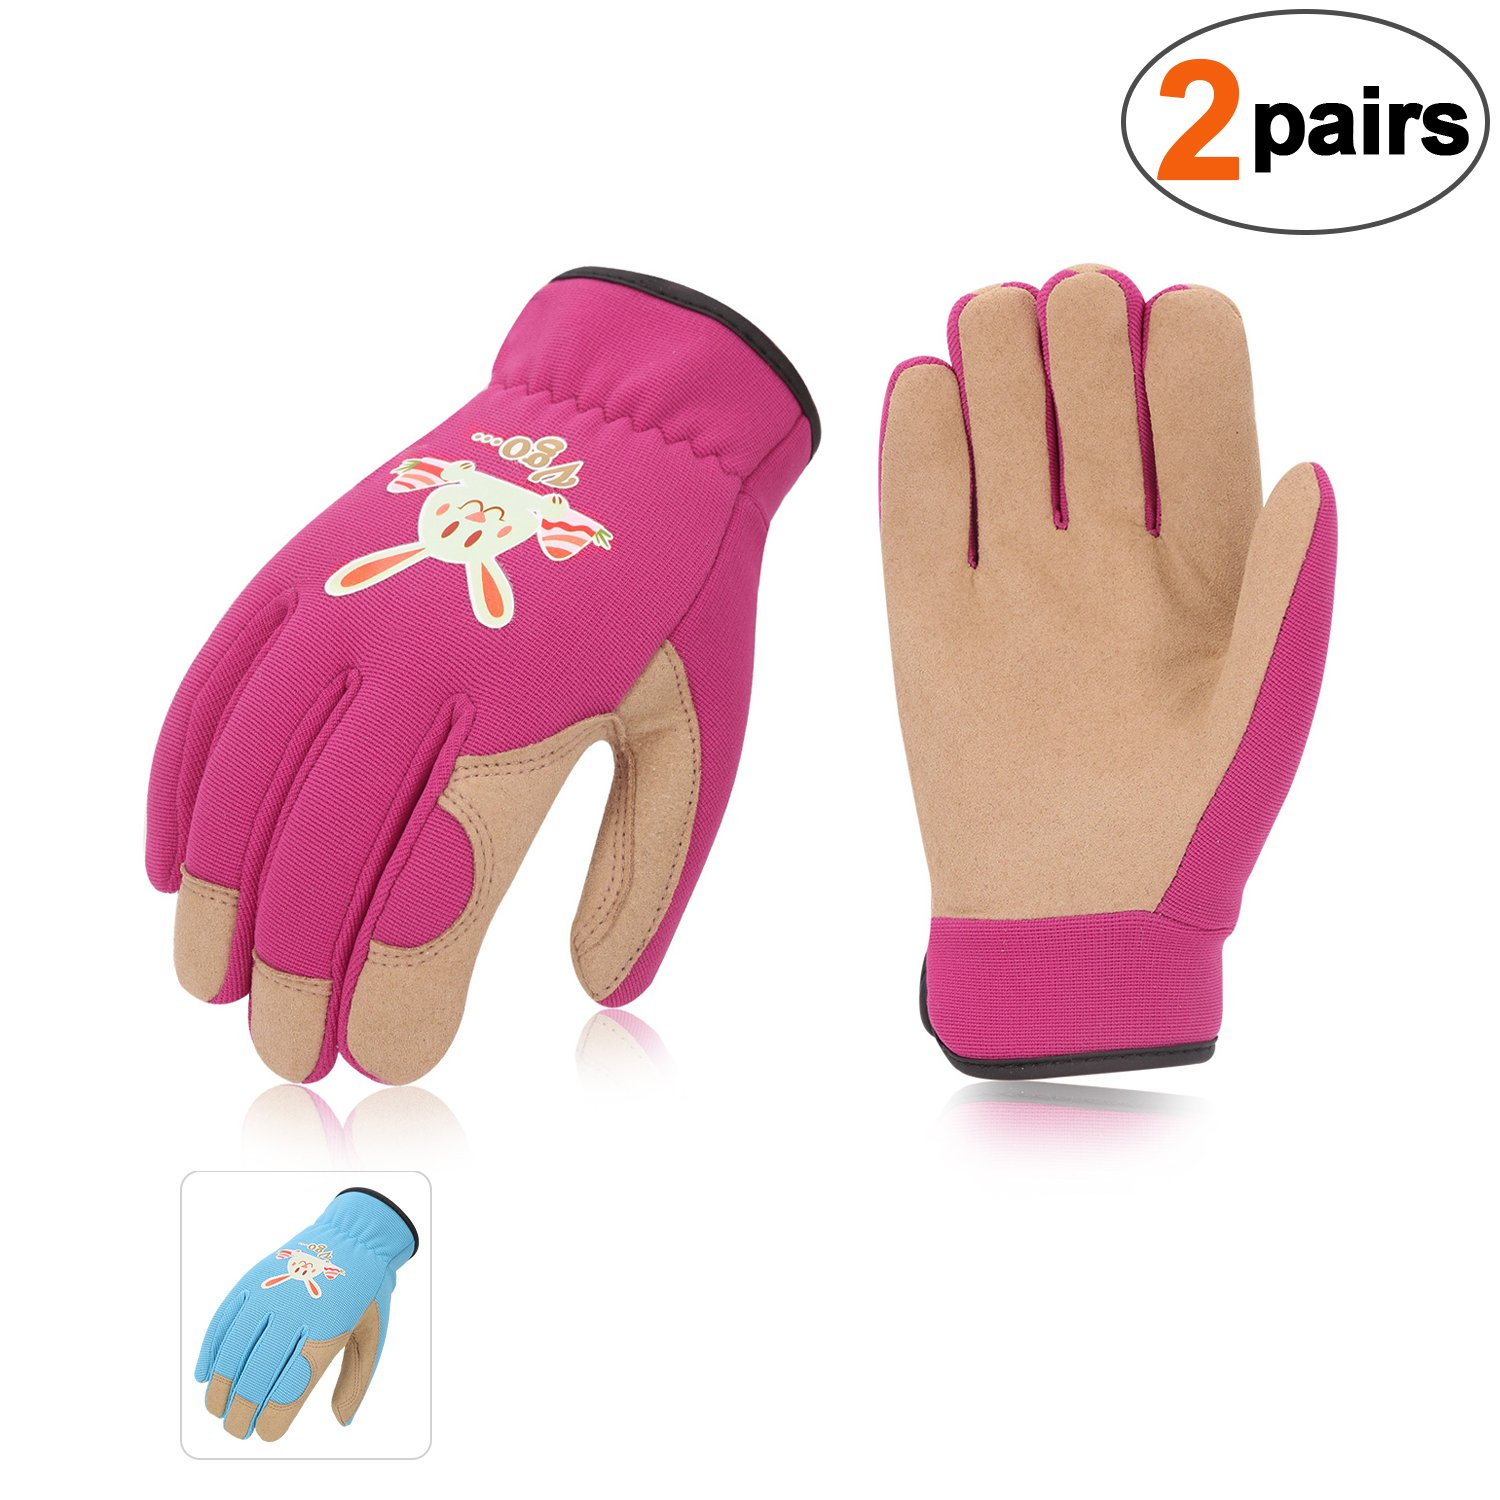 Vgo... Kids Age 3-4 Gardening,Lawing,Working Gloves(2Pairs,Size XS, 2Colors,Synthetic Leather and Spandex,KID-SL7362)